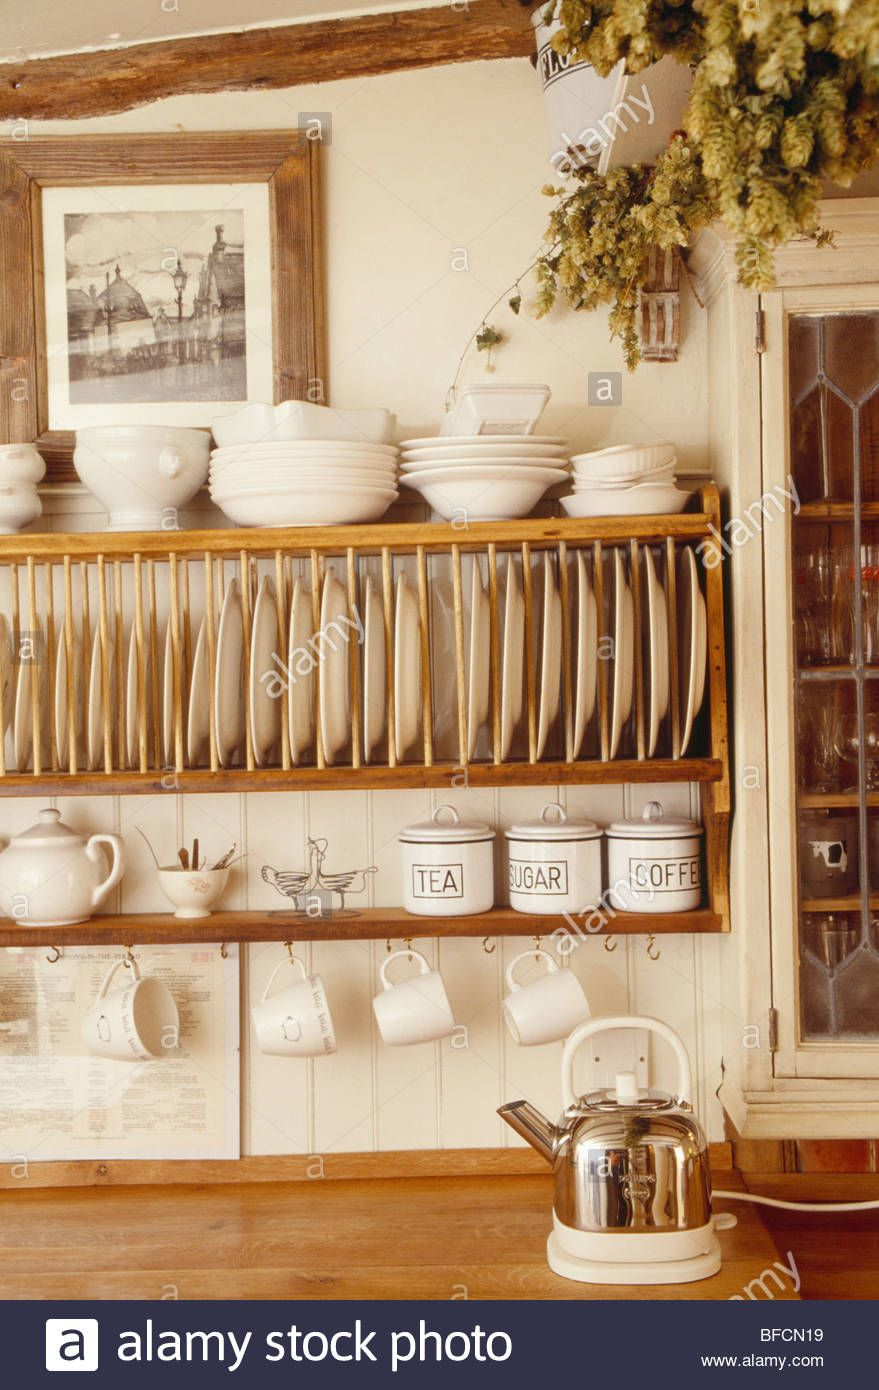 Stock Photo - Close-up of cream bowls and cups on wooden plate rack